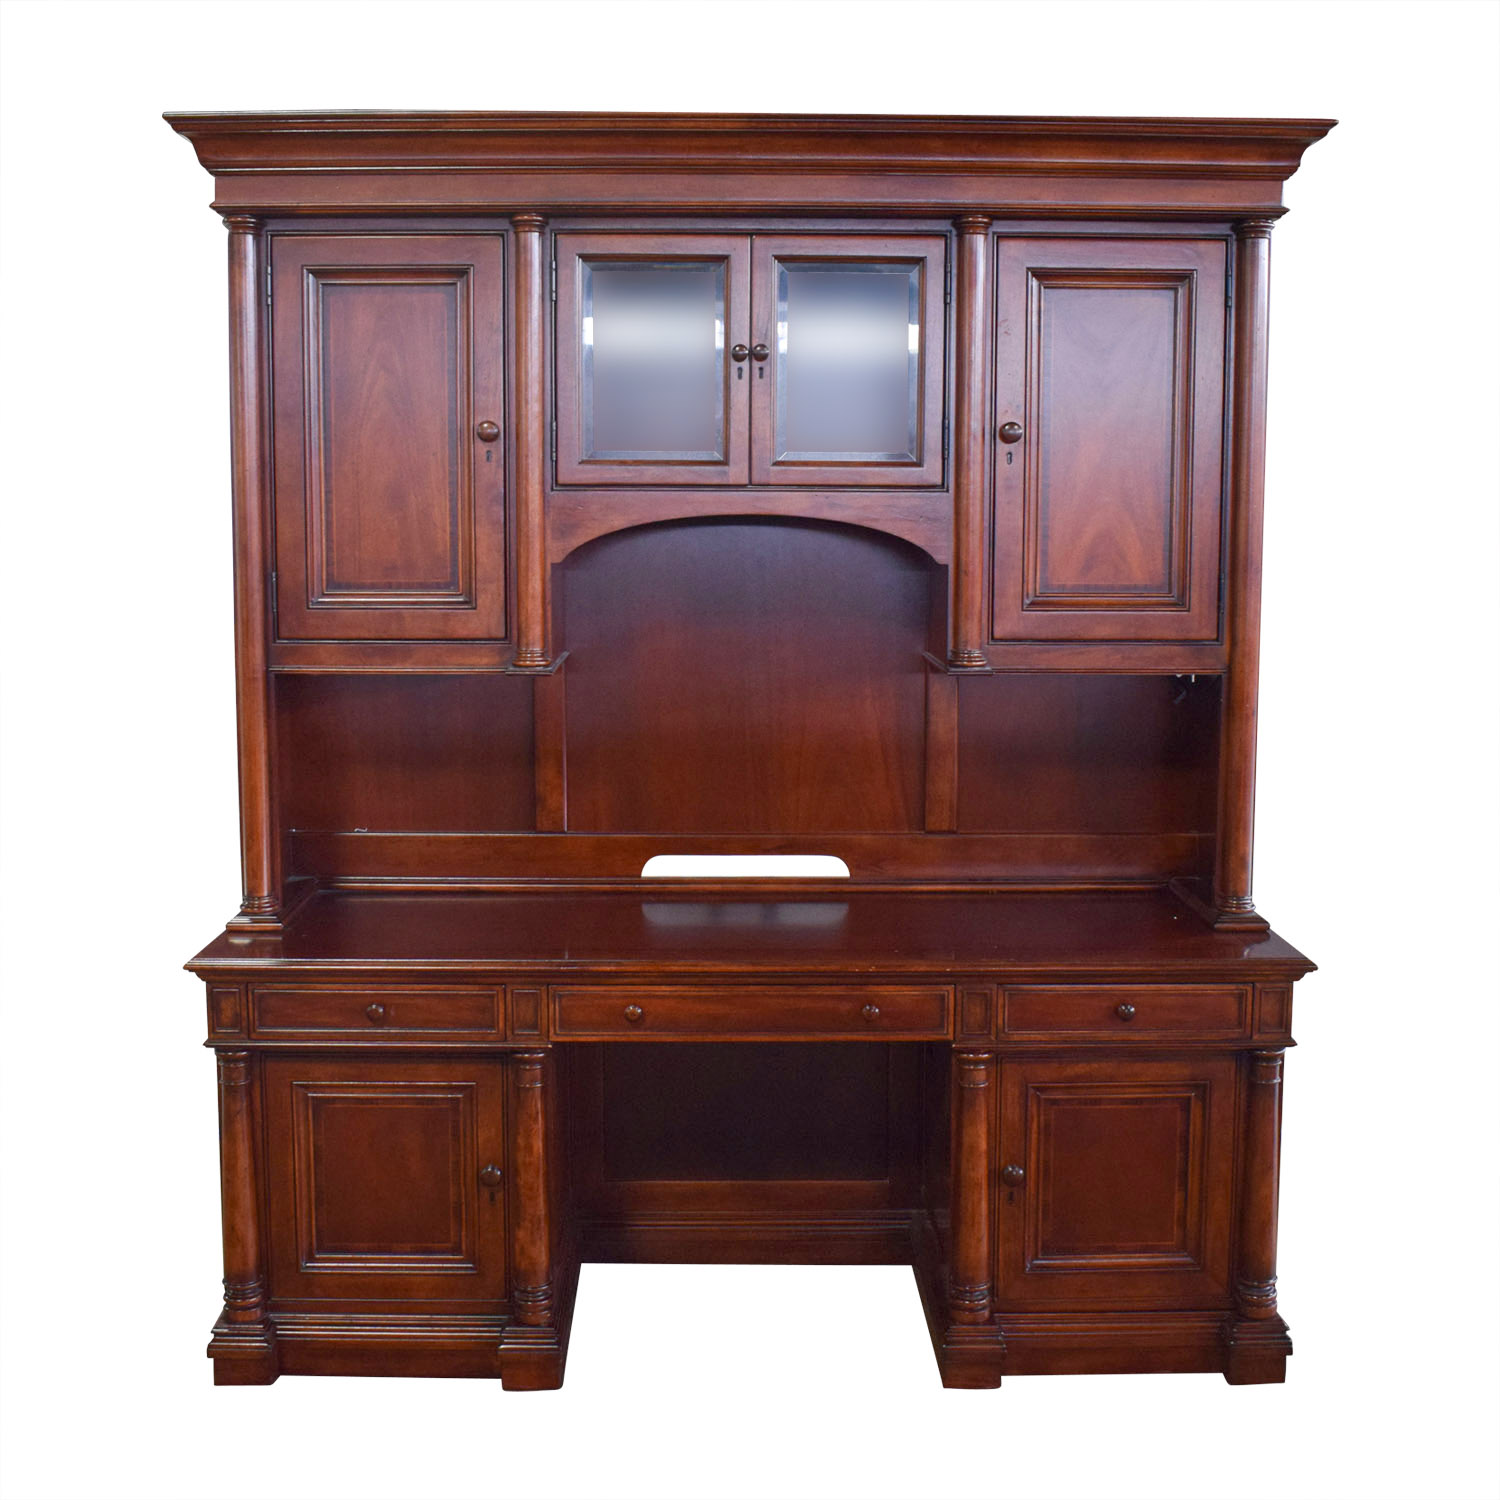 Thomasville Thomasville Computer Credenza and Hutch Dark Cherry